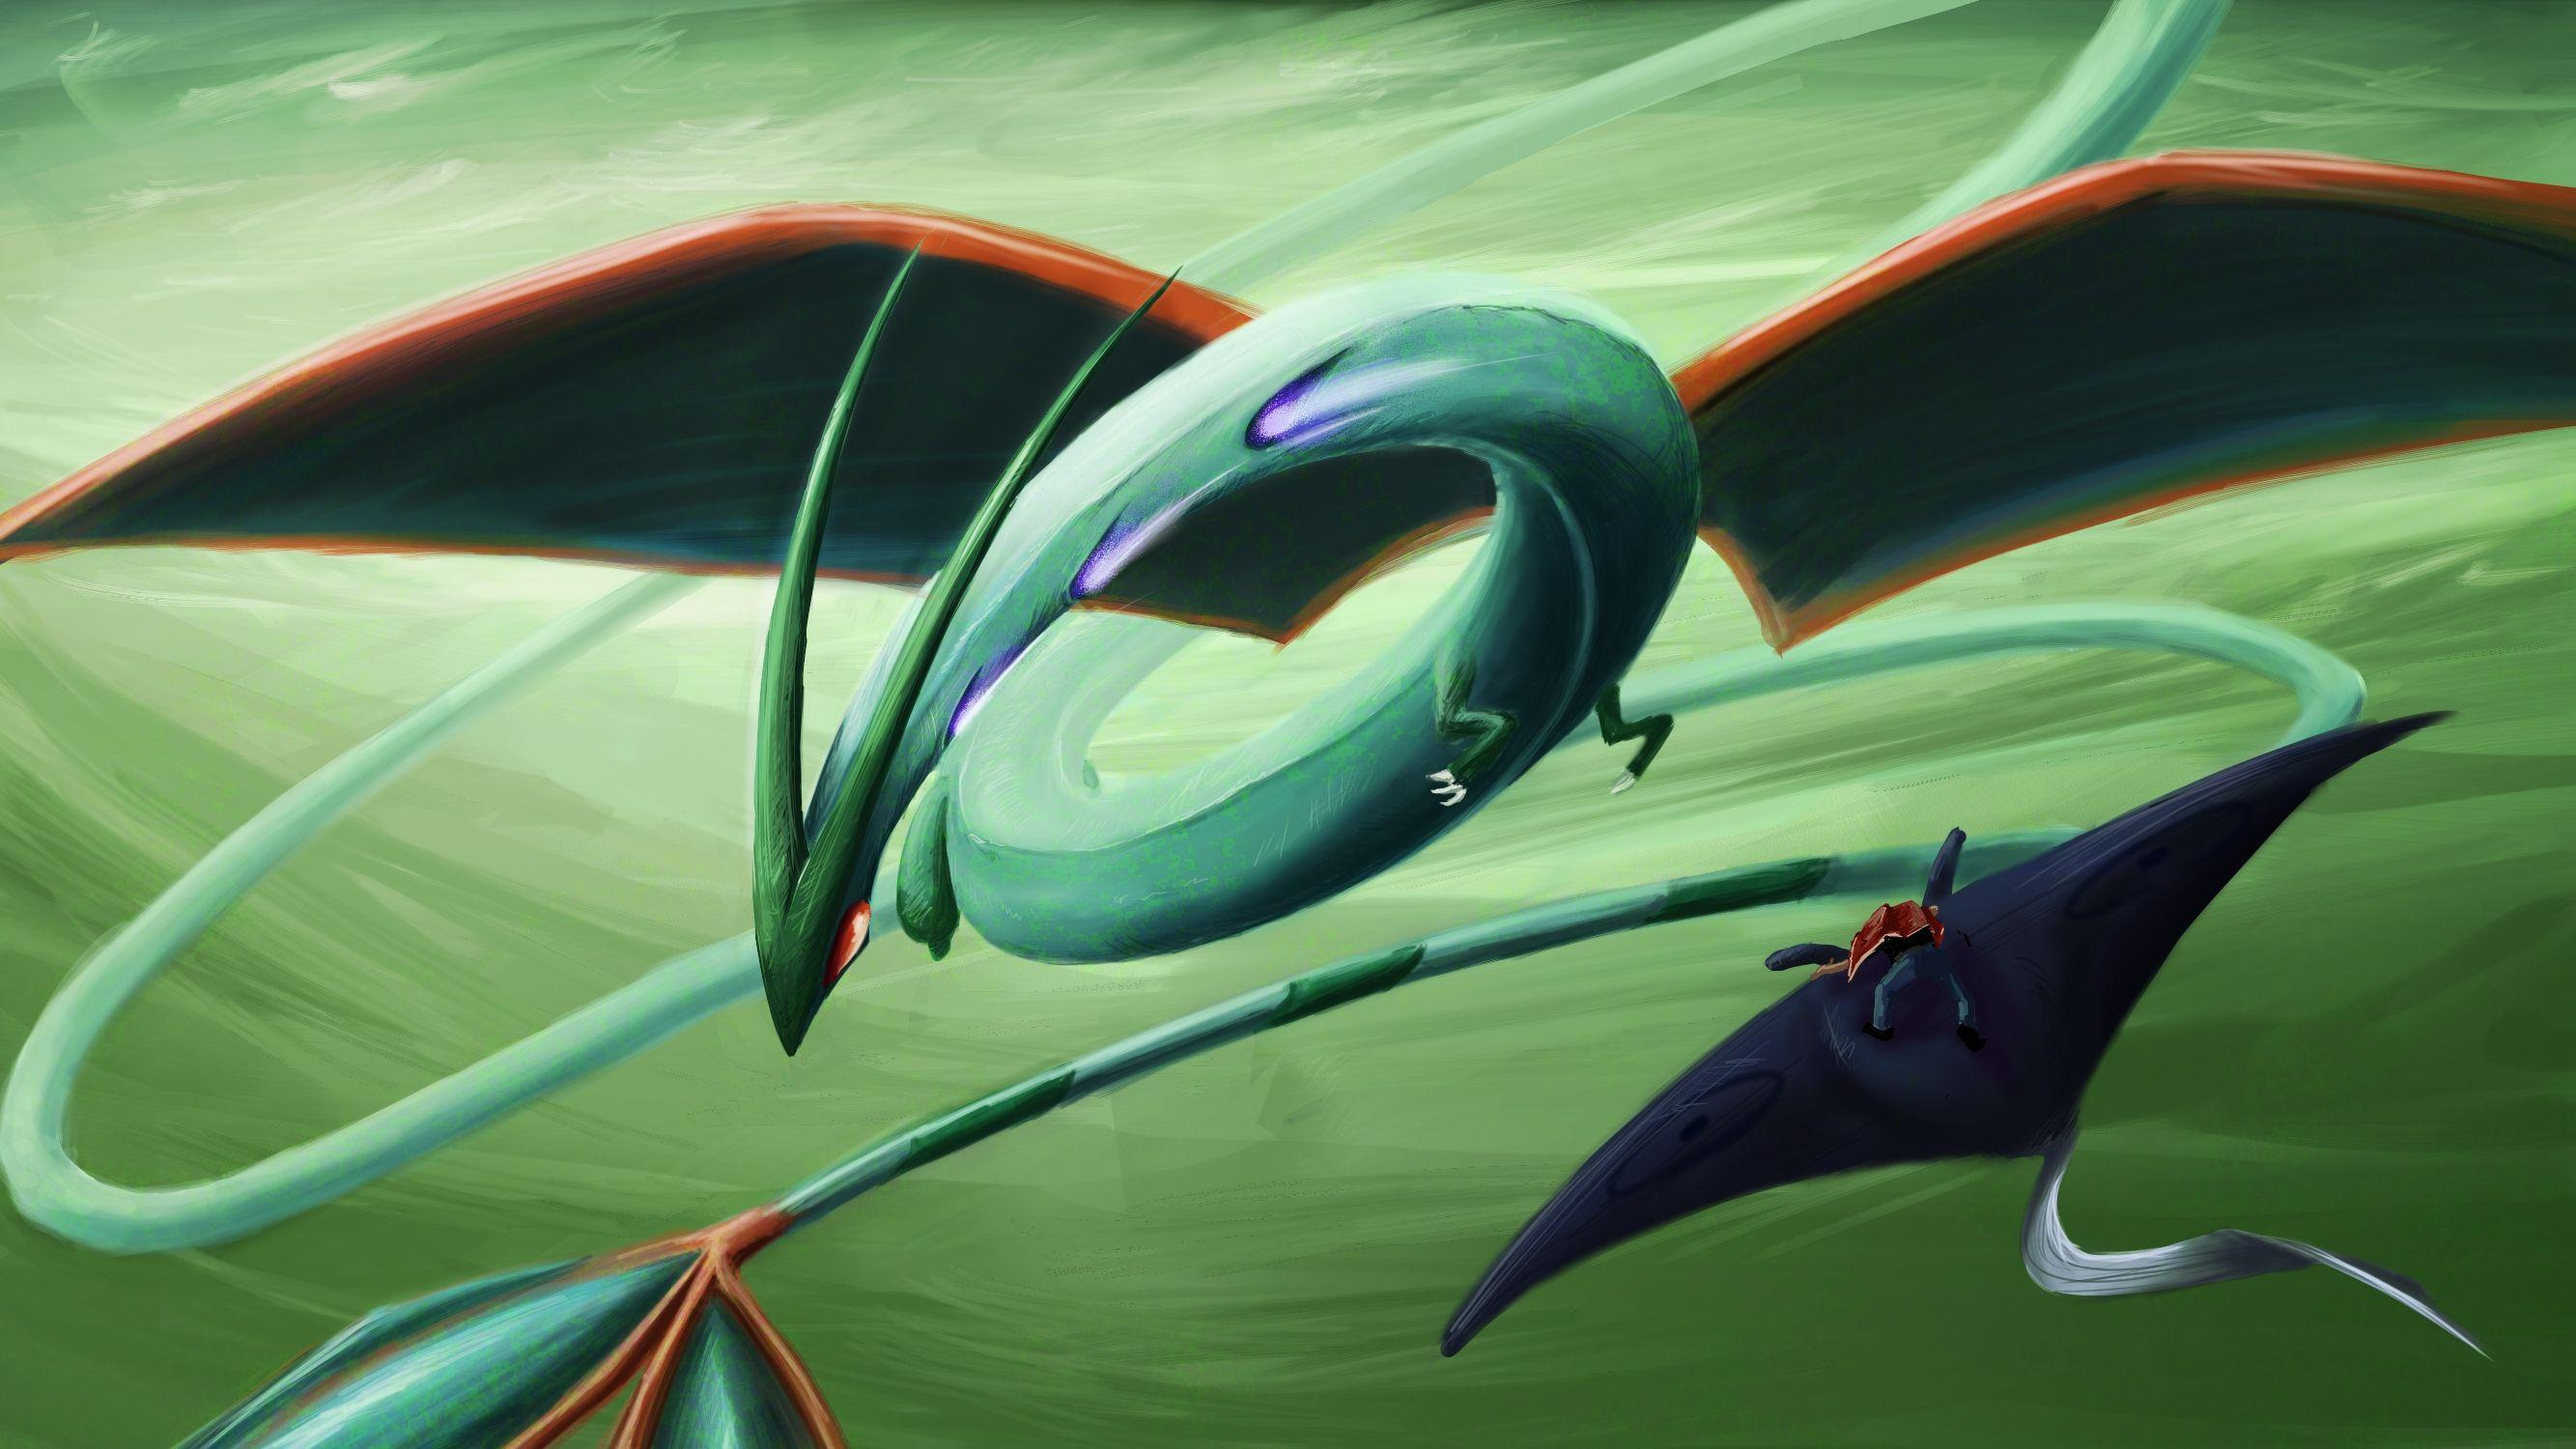 flygon wallpapers | WallpaperUP